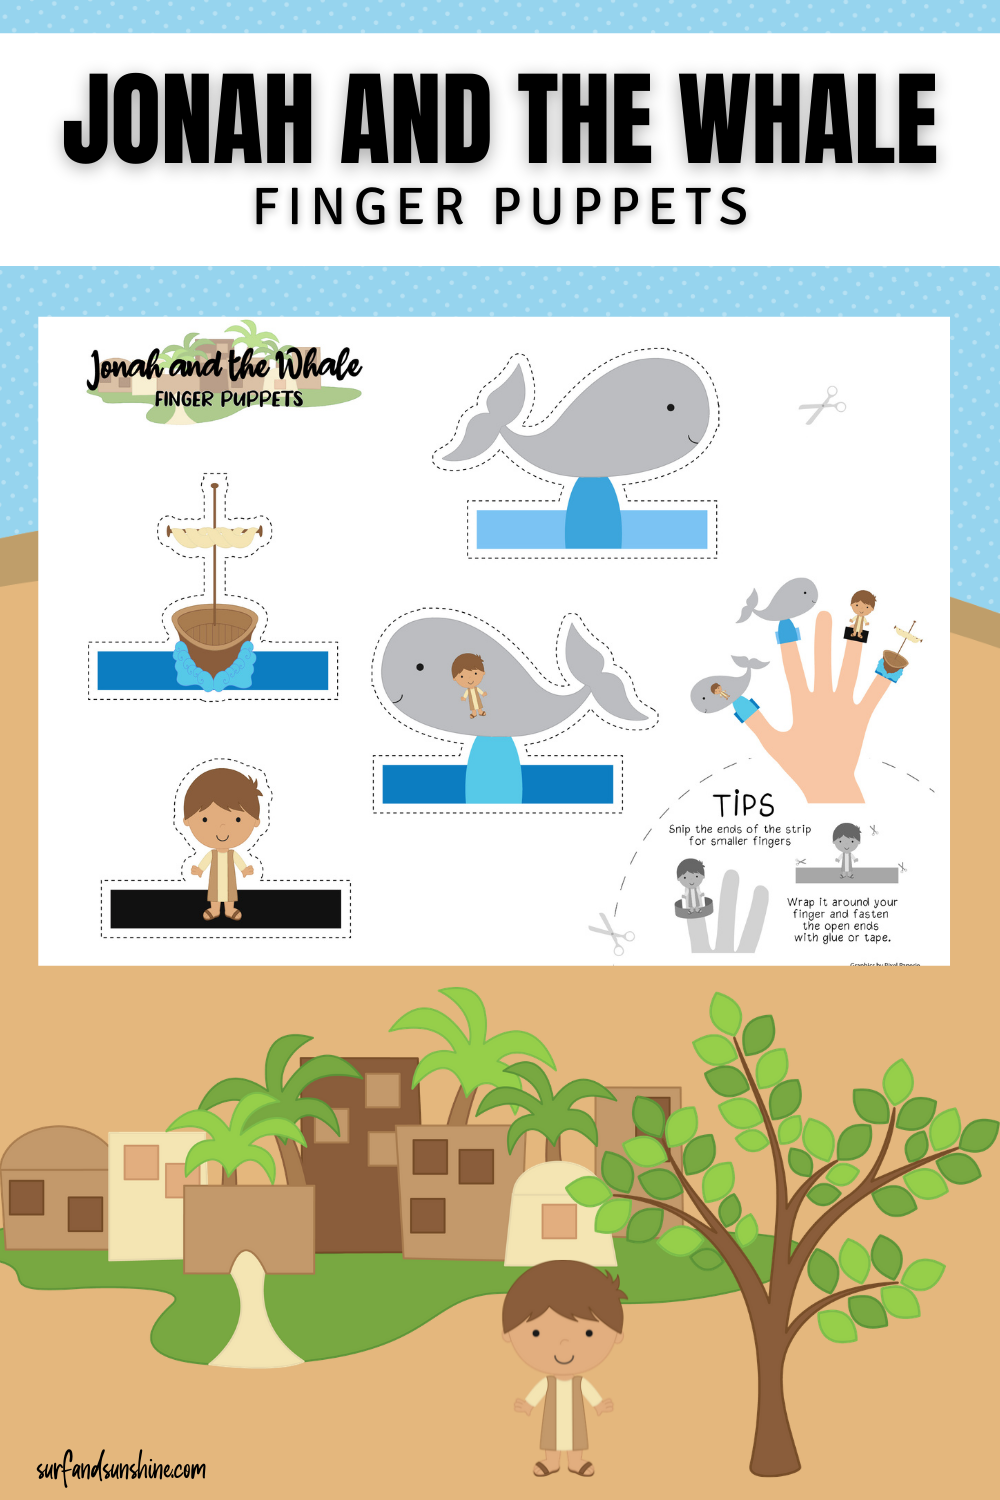 Jonah and the Whale Finger Puppets PIN png